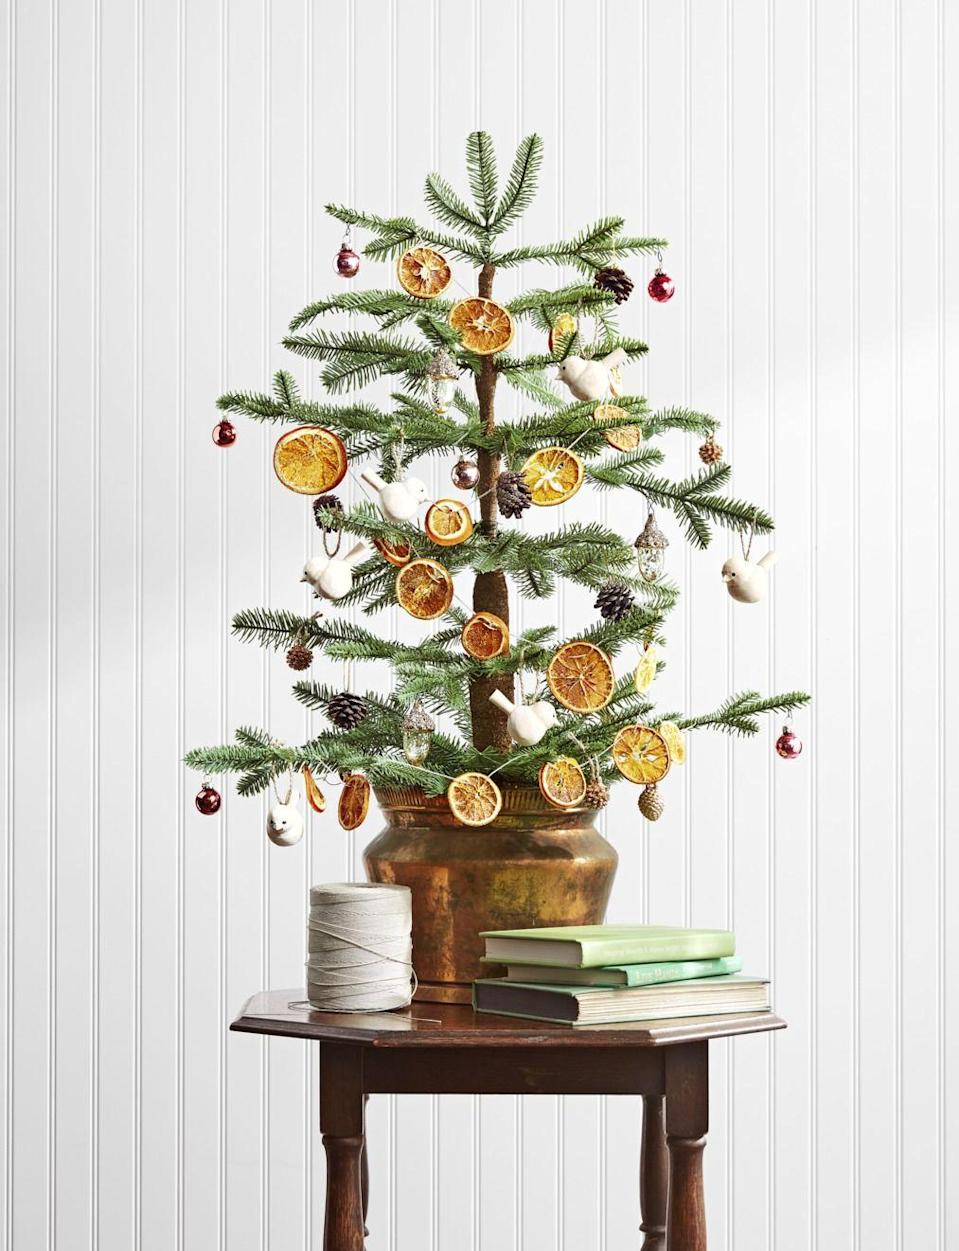 """<p>Citrus ornaments look almost like stained glass when the light shines through them. To string your own strand, all you need are navel and blood oranges, parchment paper, two cookie sheets, jute or natural twine, a skewer or nail, and decorative hooks. </p><p><strong>Make the Ornaments:</strong></p><p>1. Preheat oven to 250°F. </p><p>2. Cut oranges crosswise into 1/4-inch slices (four oranges make a six-foot garland). </p><p>3. Line cookie sheets with parchment paper. Pat orange slices dry with paper towels, and place them on cookie sheets in a single layer. </p><p>4. Bake for approximately 3 hours or until dry. (To ensure the slices dry flat, turn them over at the midway mark.) Remove from oven. </p><p>5. Using a skewer or nail, poke two holes into the top of each orange slice. </p><p>6. Thread twine through each hole, evenly spacing the oranges on the garland. Tie off each end with a loop, and hang from hooks.</p><p><a class=""""link rapid-noclick-resp"""" href=""""https://www.amazon.com/Dried-Orange-Slices-4-oz/dp/B014TF49MQ?tag=syn-yahoo-20&ascsubtag=%5Bartid%7C10050.g.1070%5Bsrc%7Cyahoo-us"""" rel=""""nofollow noopener"""" target=""""_blank"""" data-ylk=""""slk:SHOP DRIED ORANGE SLICES"""">SHOP DRIED ORANGE SLICES</a></p>"""